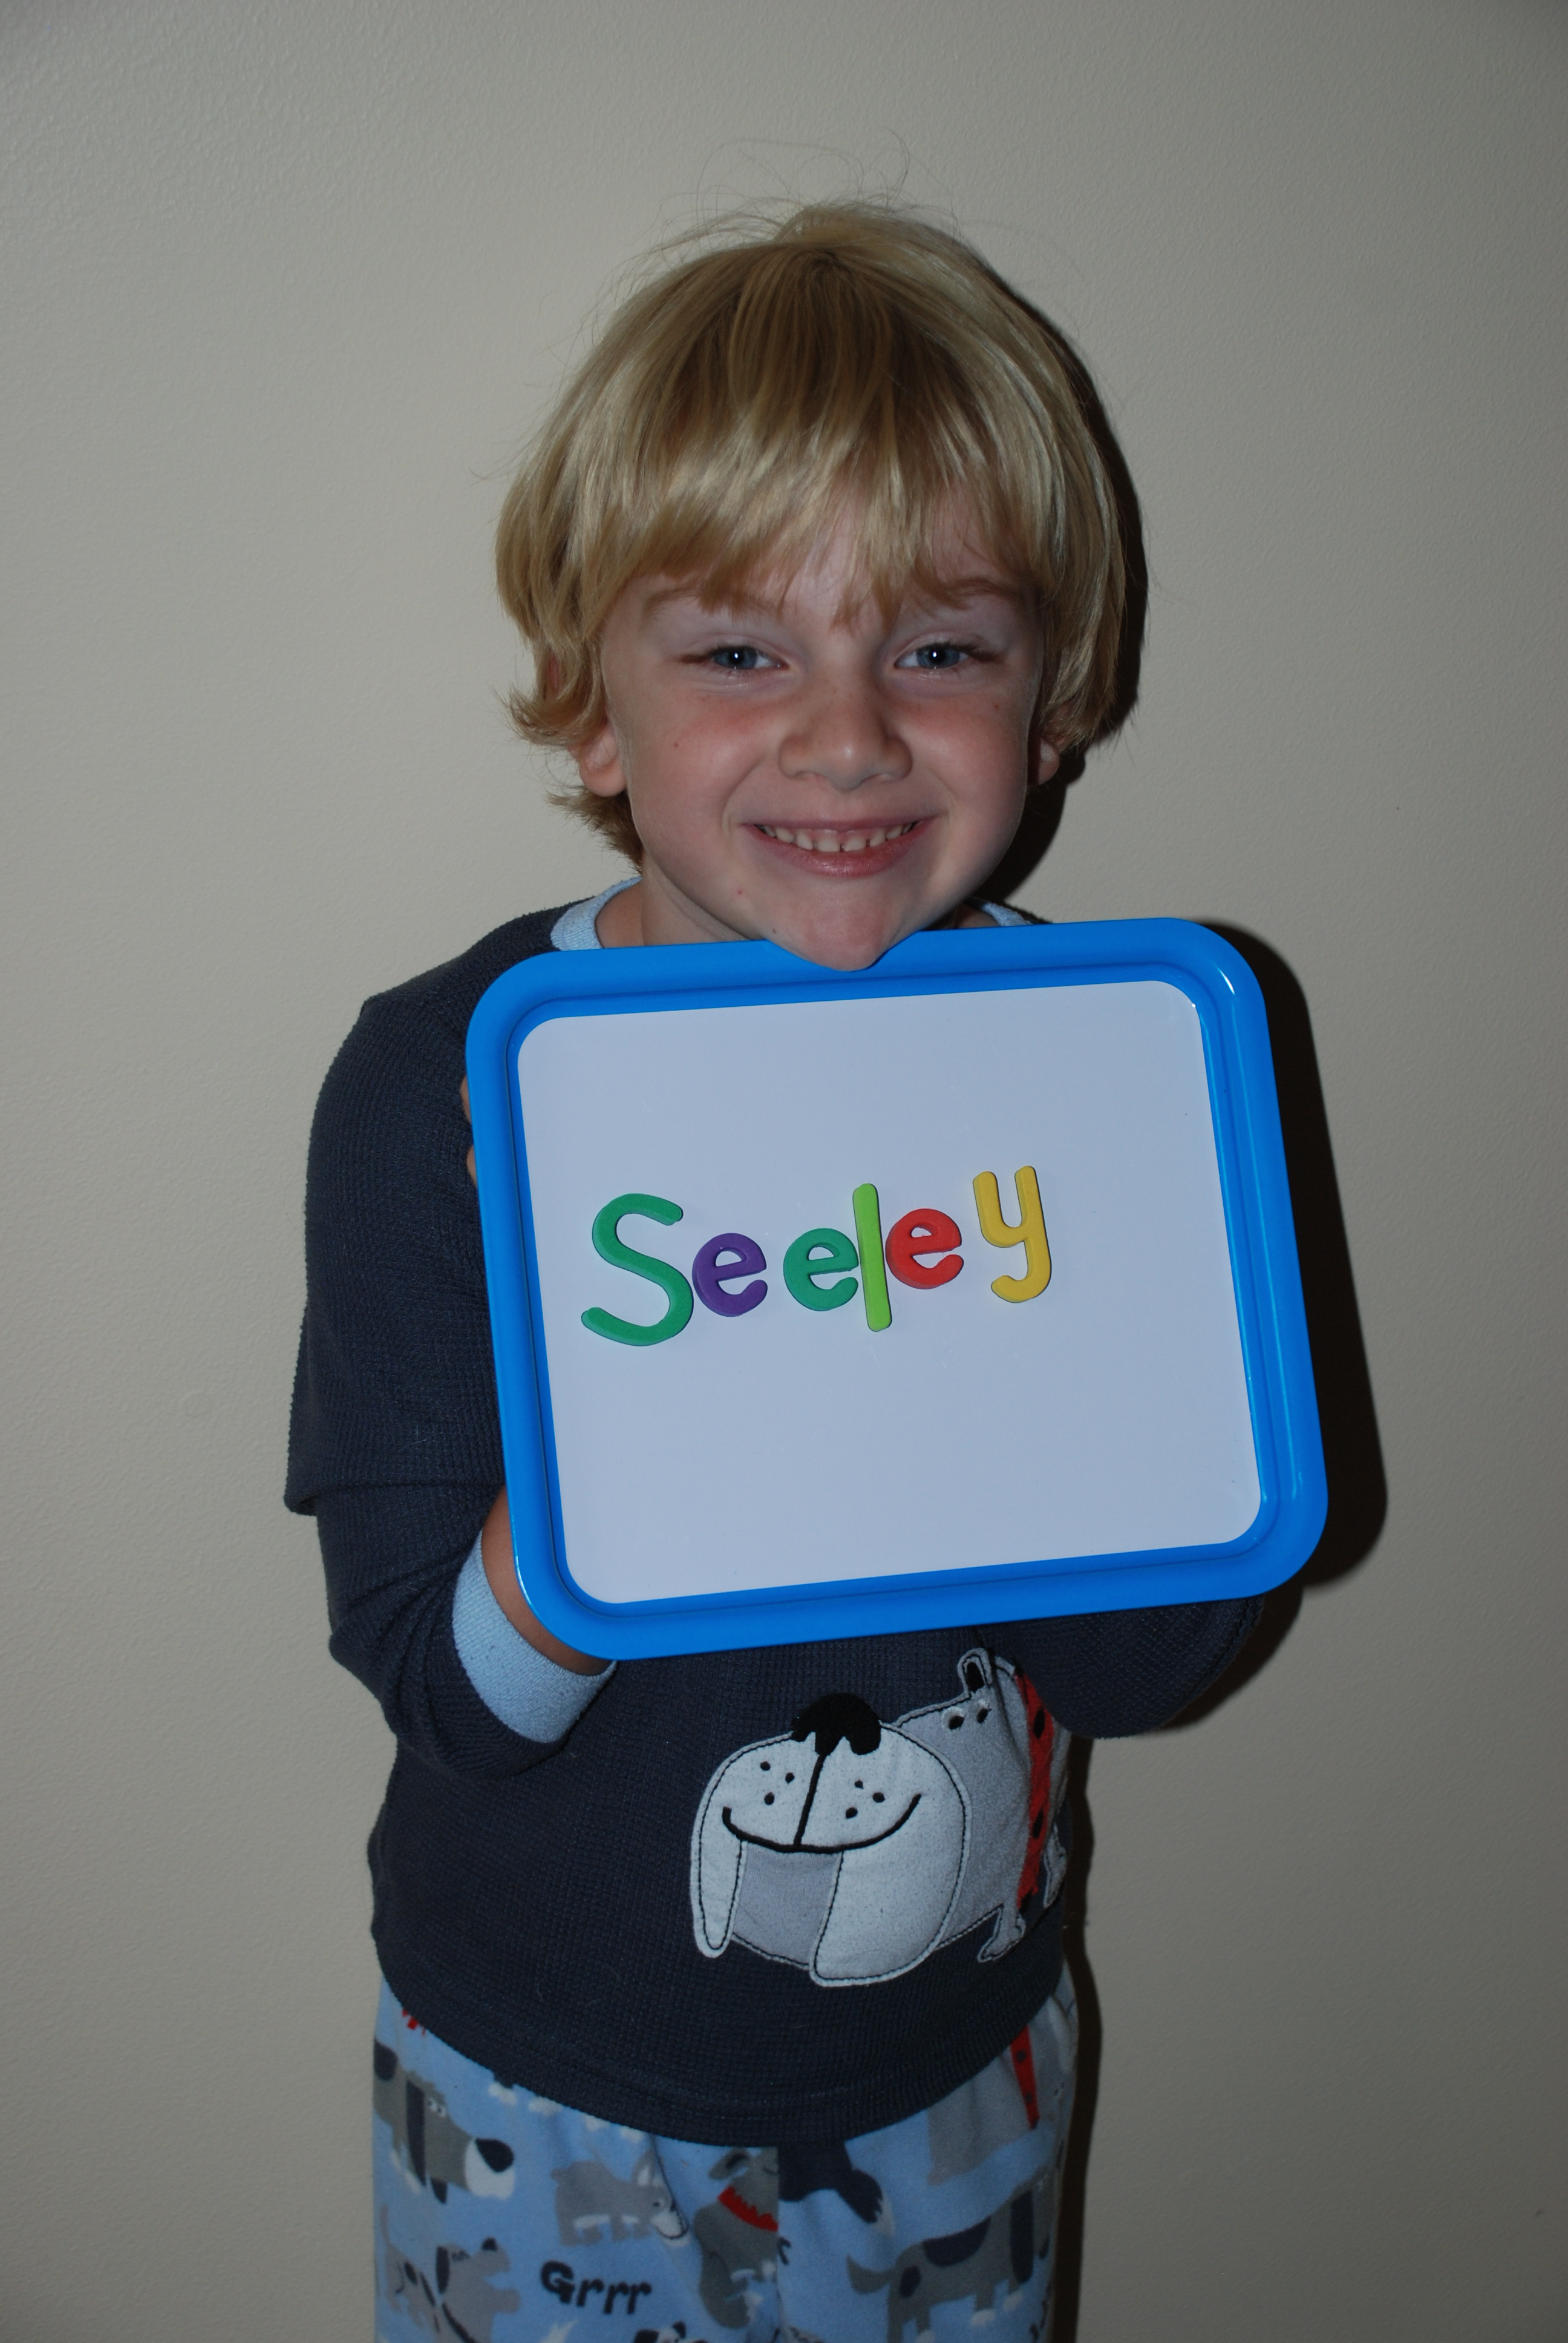 Seeley with Name